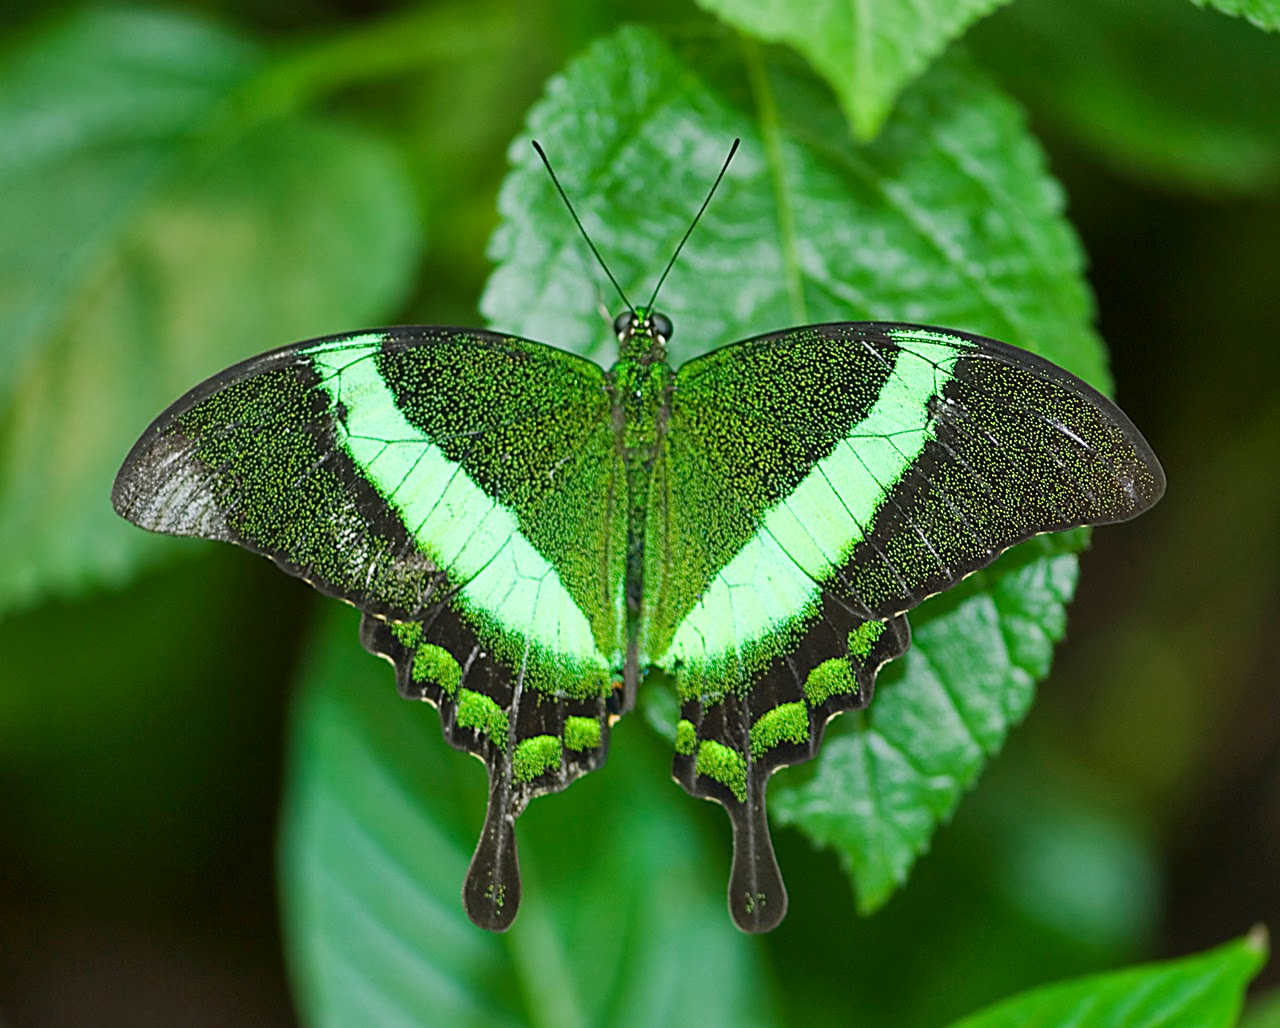 Blok888: Top 10 Most Beautiful Butterflies in the world